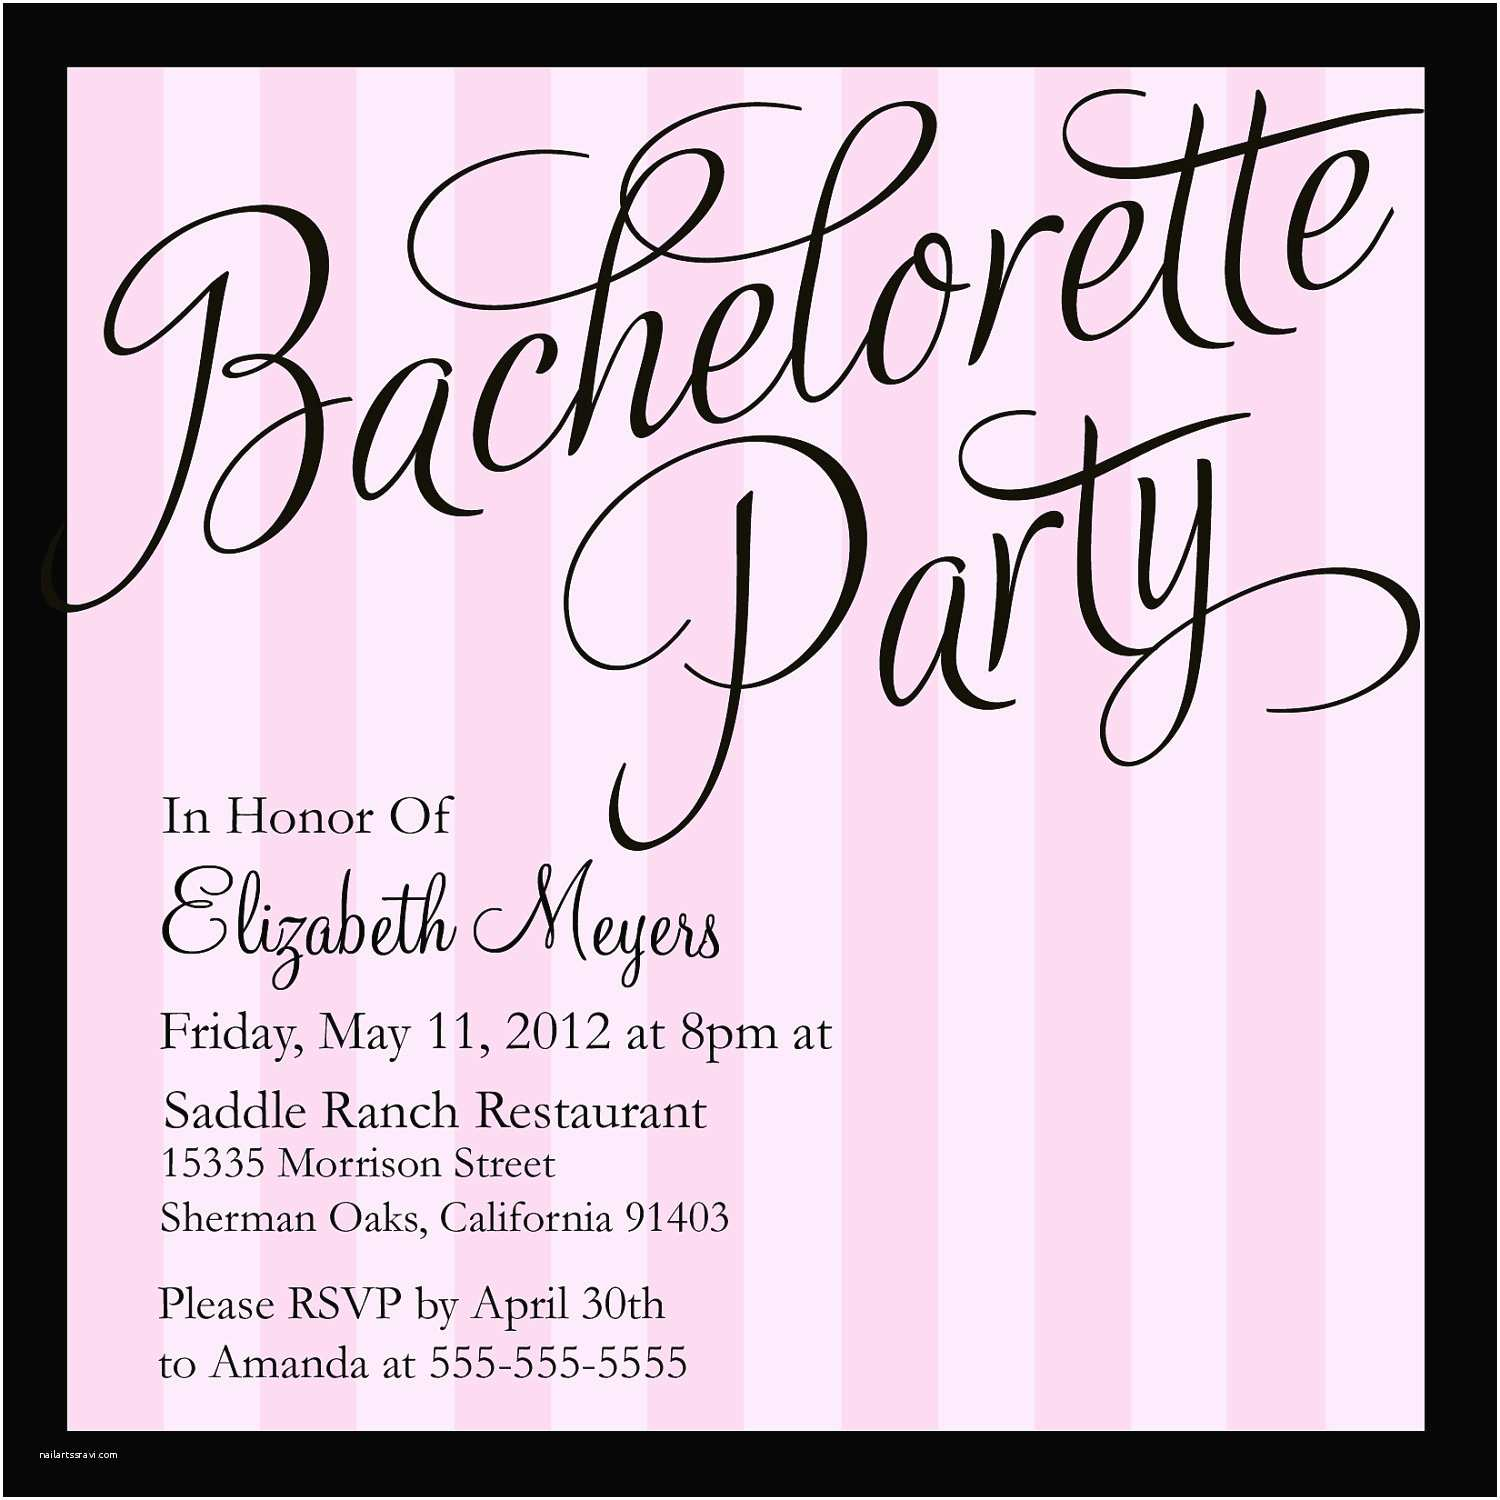 Bachelorette Party Invitation Wording Bachelorette Party Invitations Templates – Gangcraft